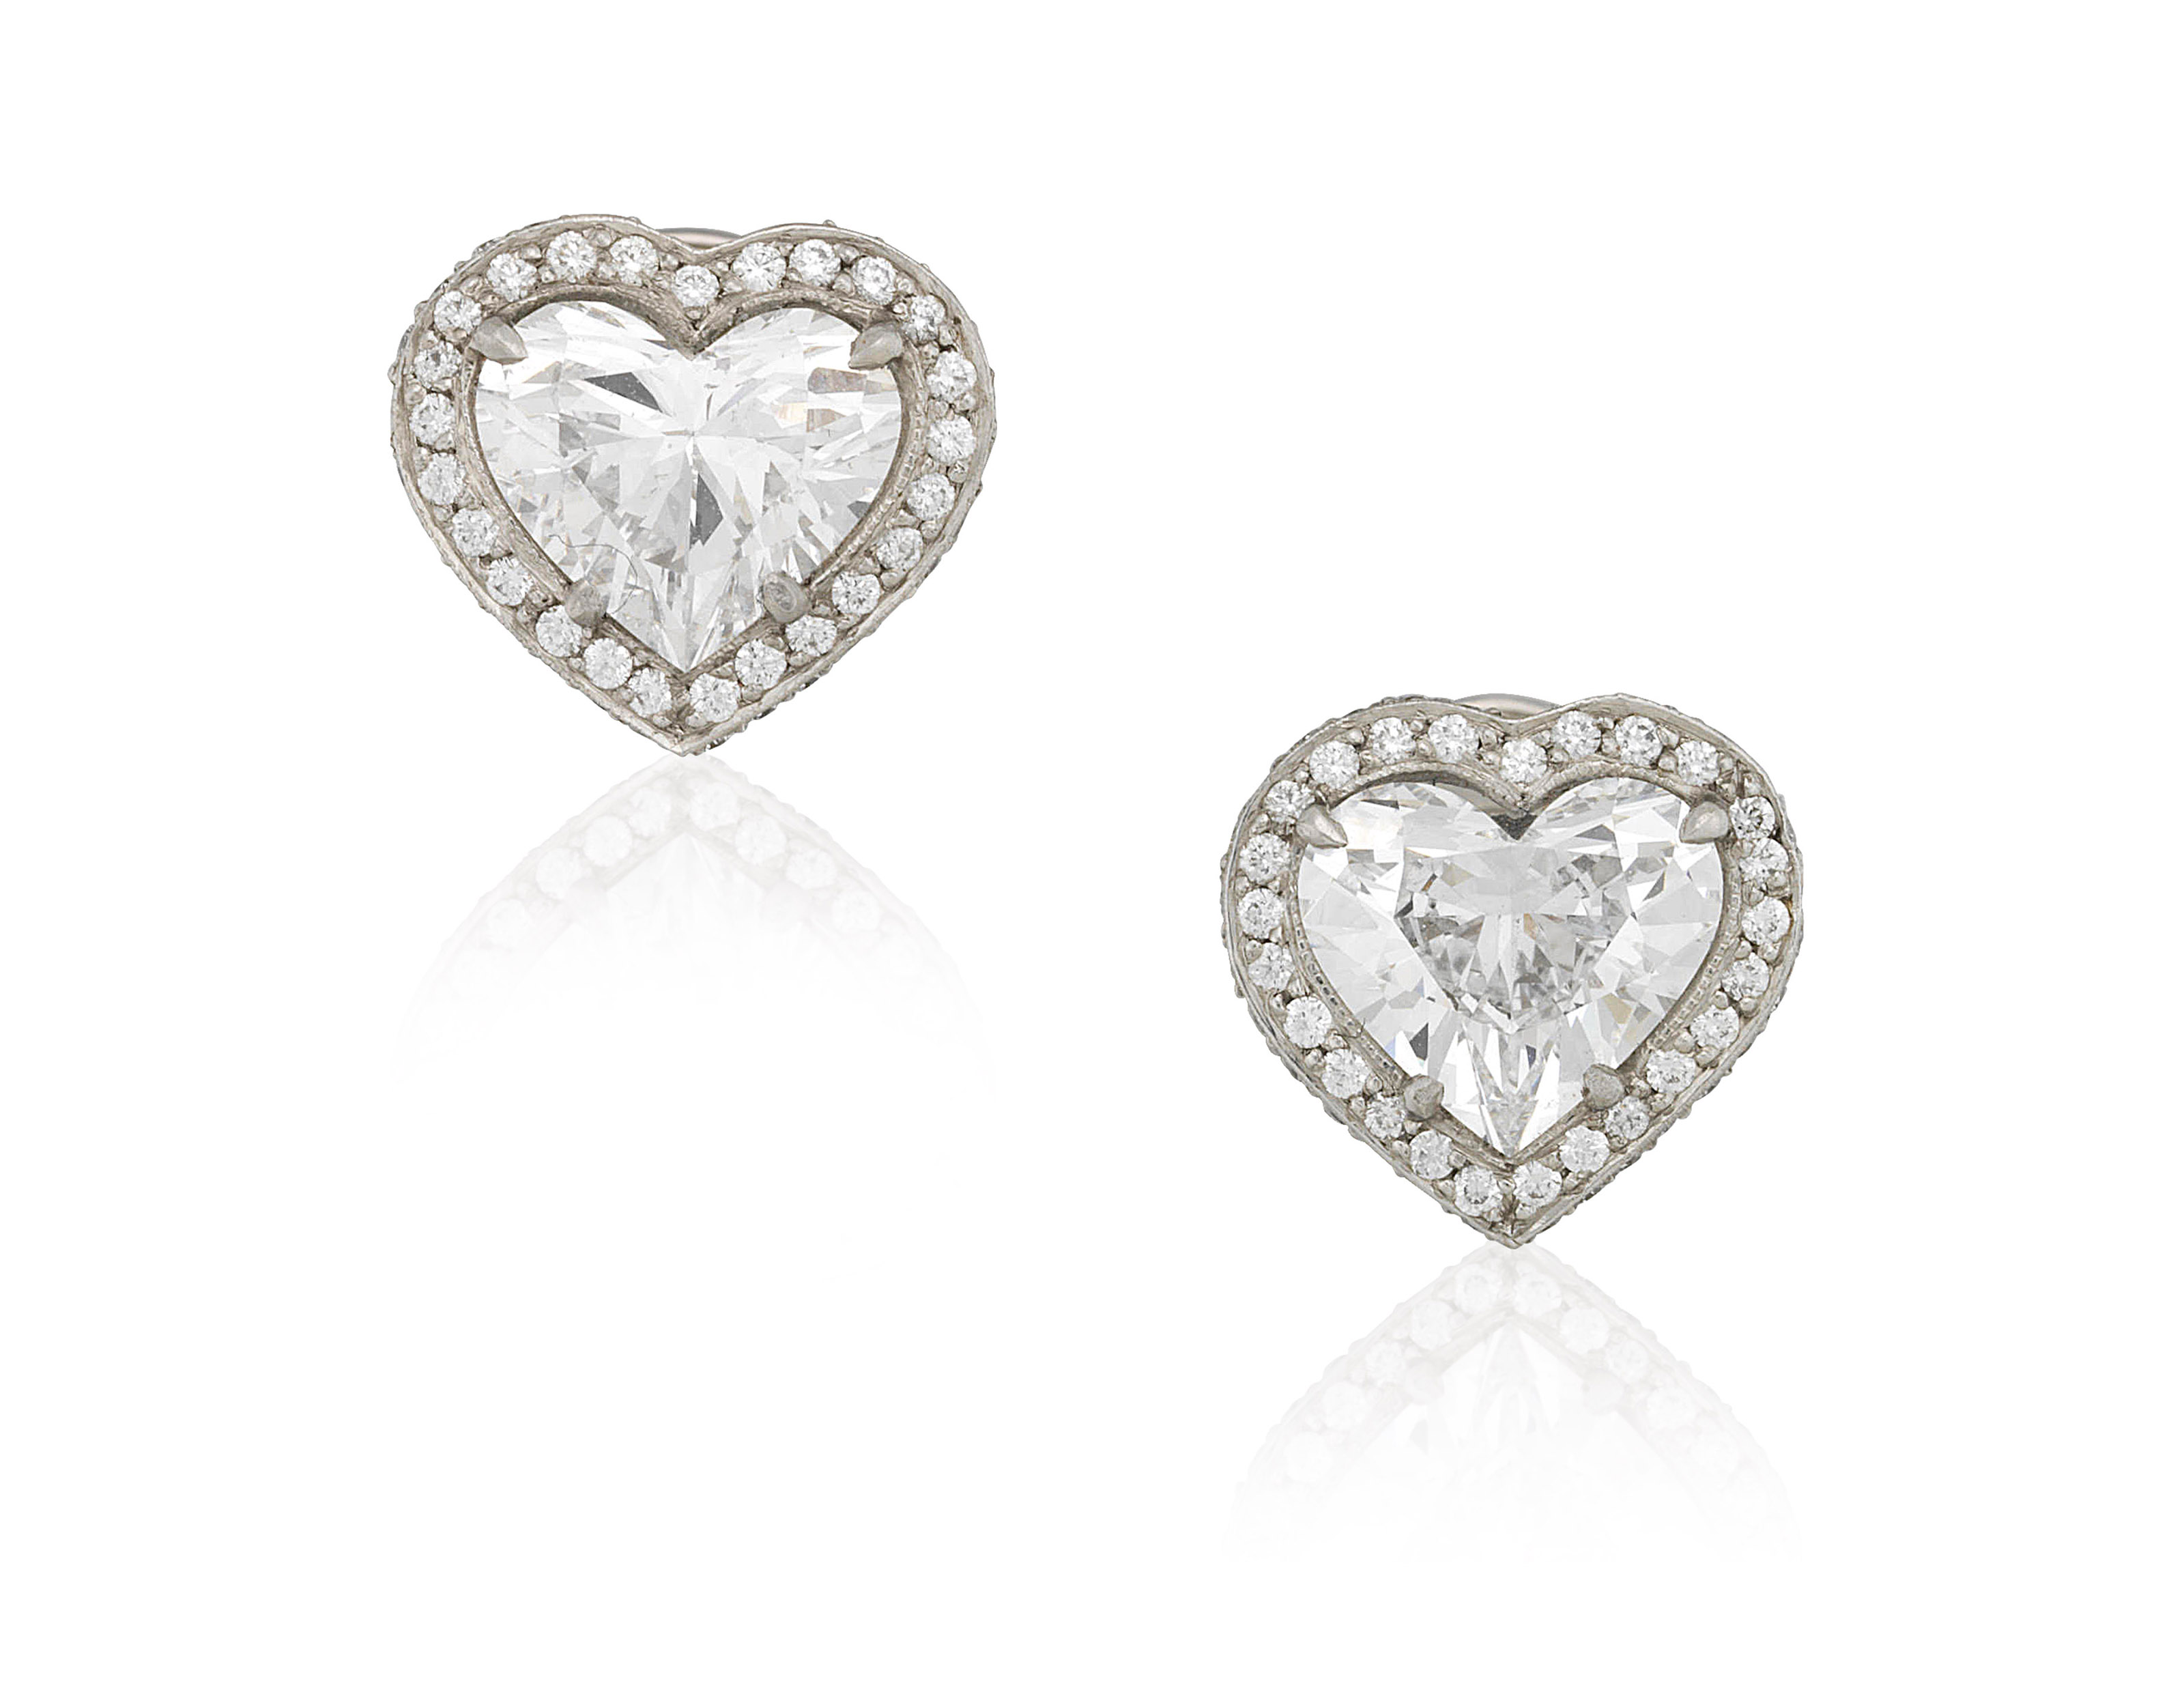 earrings onlinestore ajoure diamond floral shaped silver stud